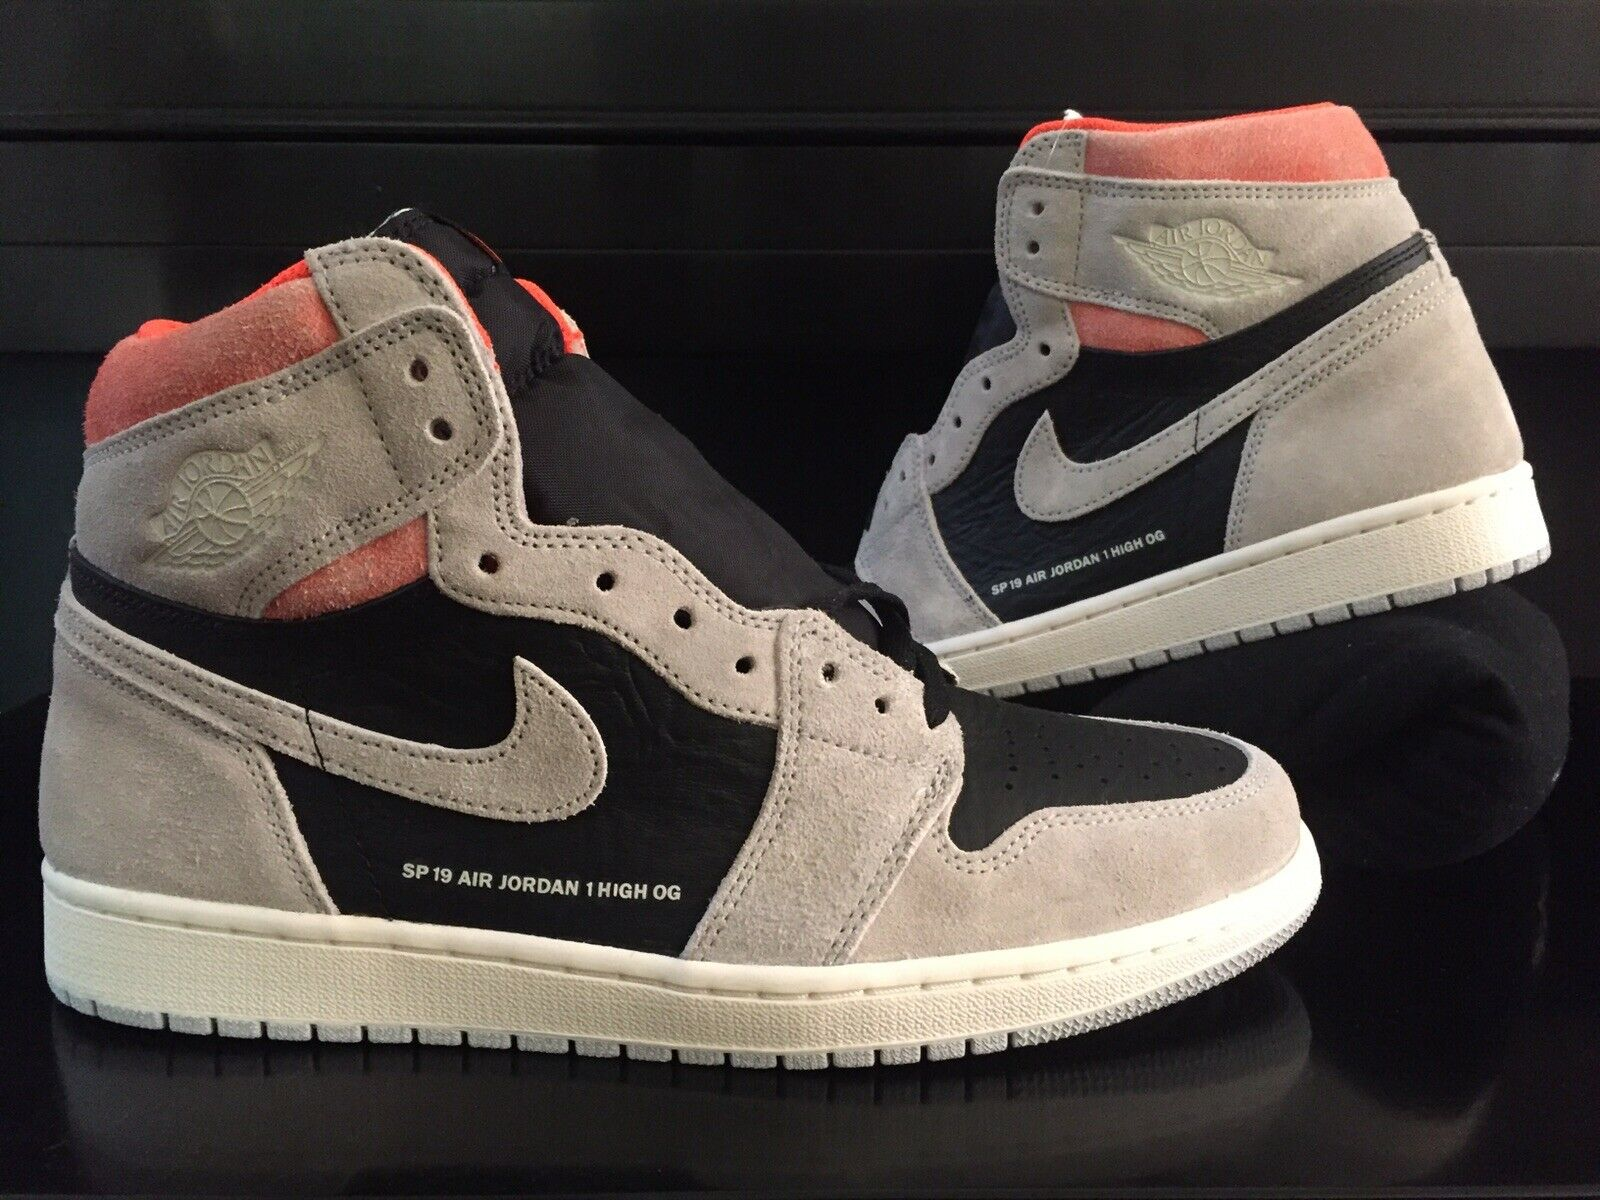 915cae476e08 NIKE AIR JORDAN RETRO 1 HIGH OG NEUTRAL GREY BLACK SP 19 QS HYPER CRIMSON  10.5